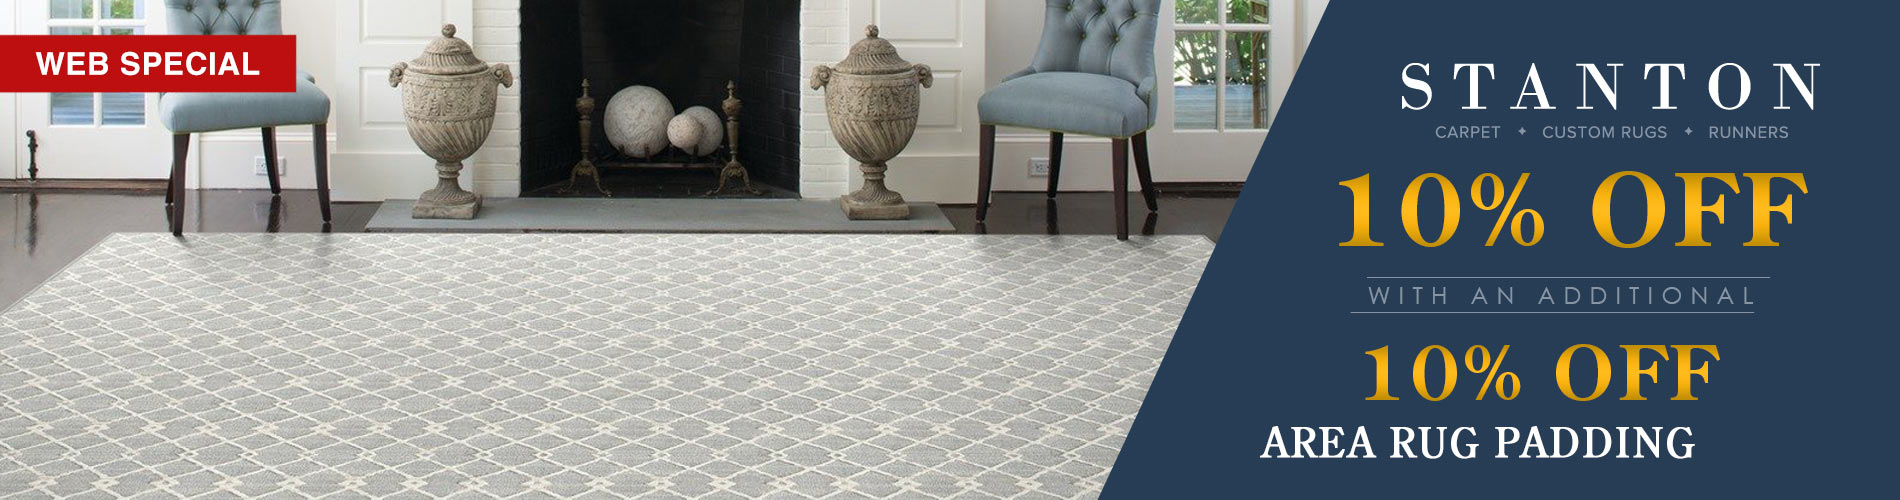 Receive 10% off Stanton carpet, custom rugs, and runners with an additional 10% off your area rug padding only at Nu Floors To Go